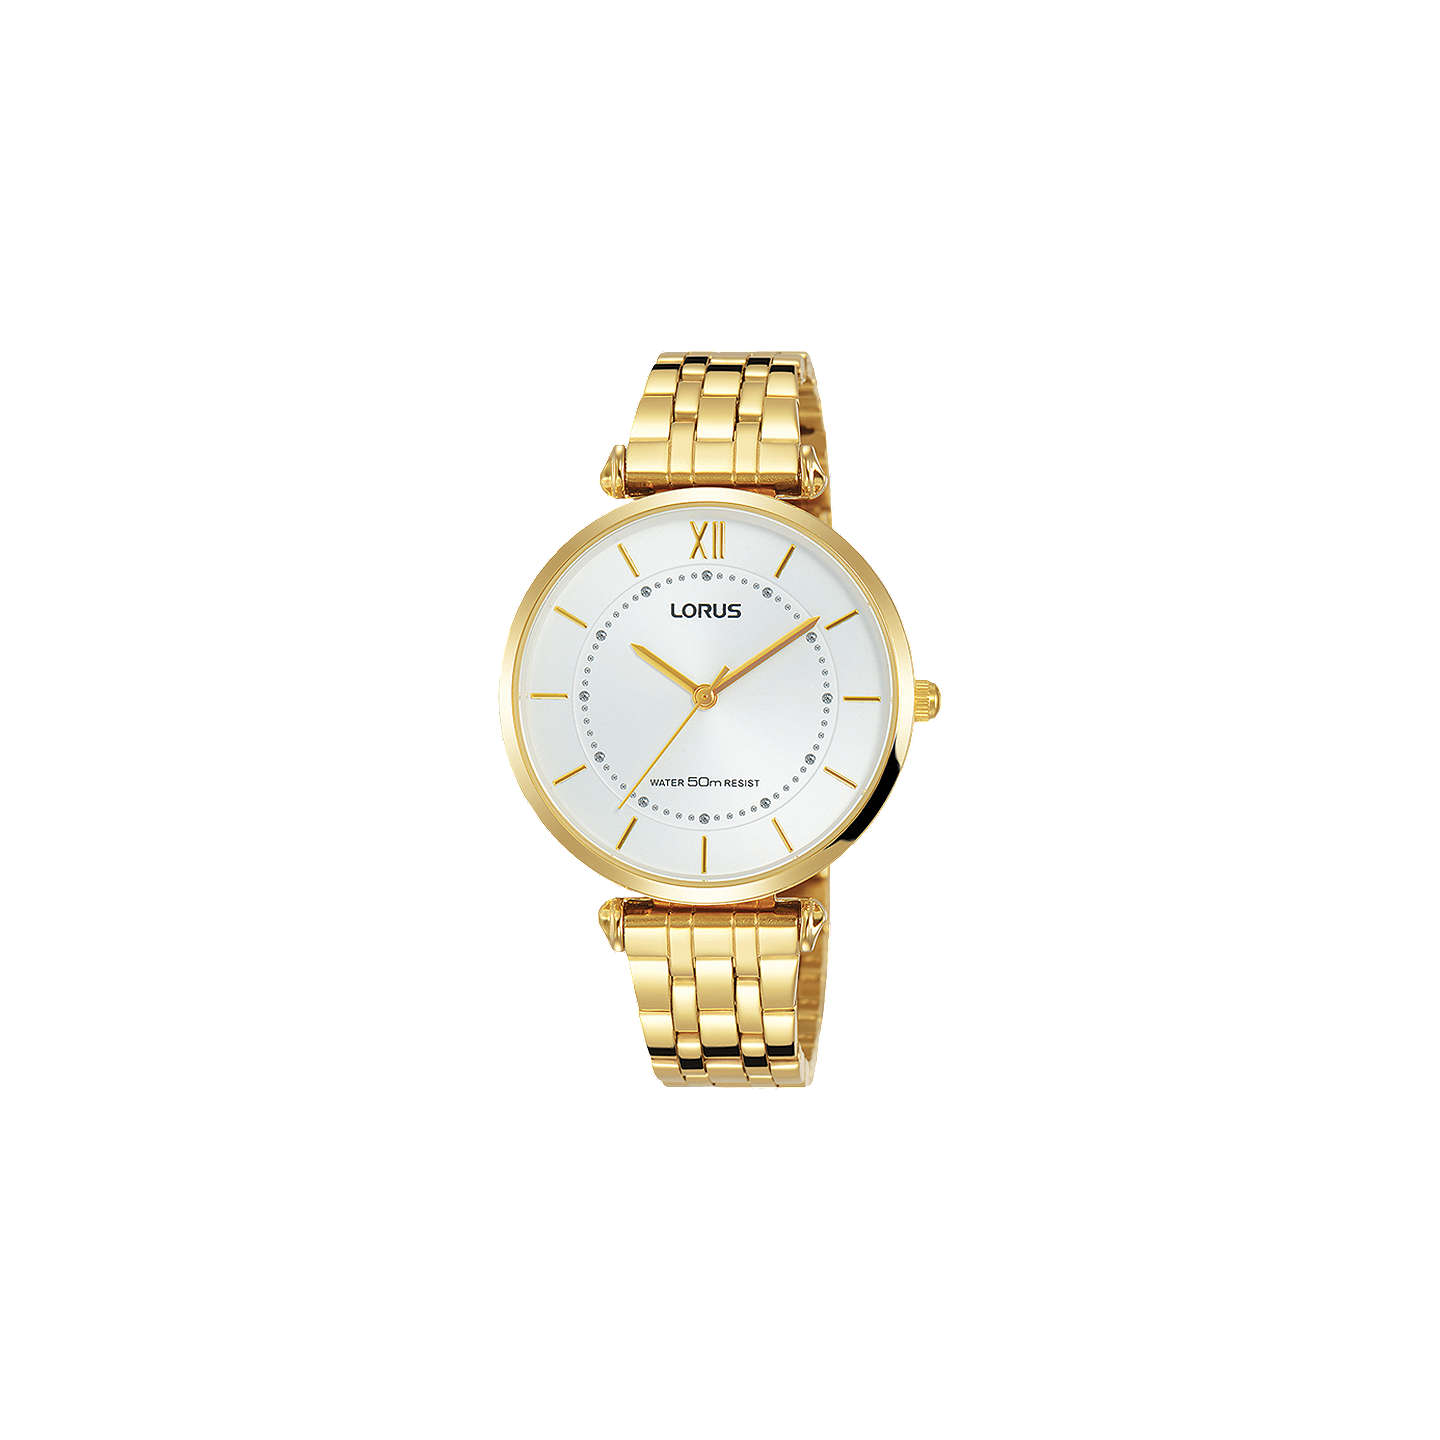 Lorus Women's Round Bracelet Strap Watch, Gold/White Rg292 Mx9 by Lorus